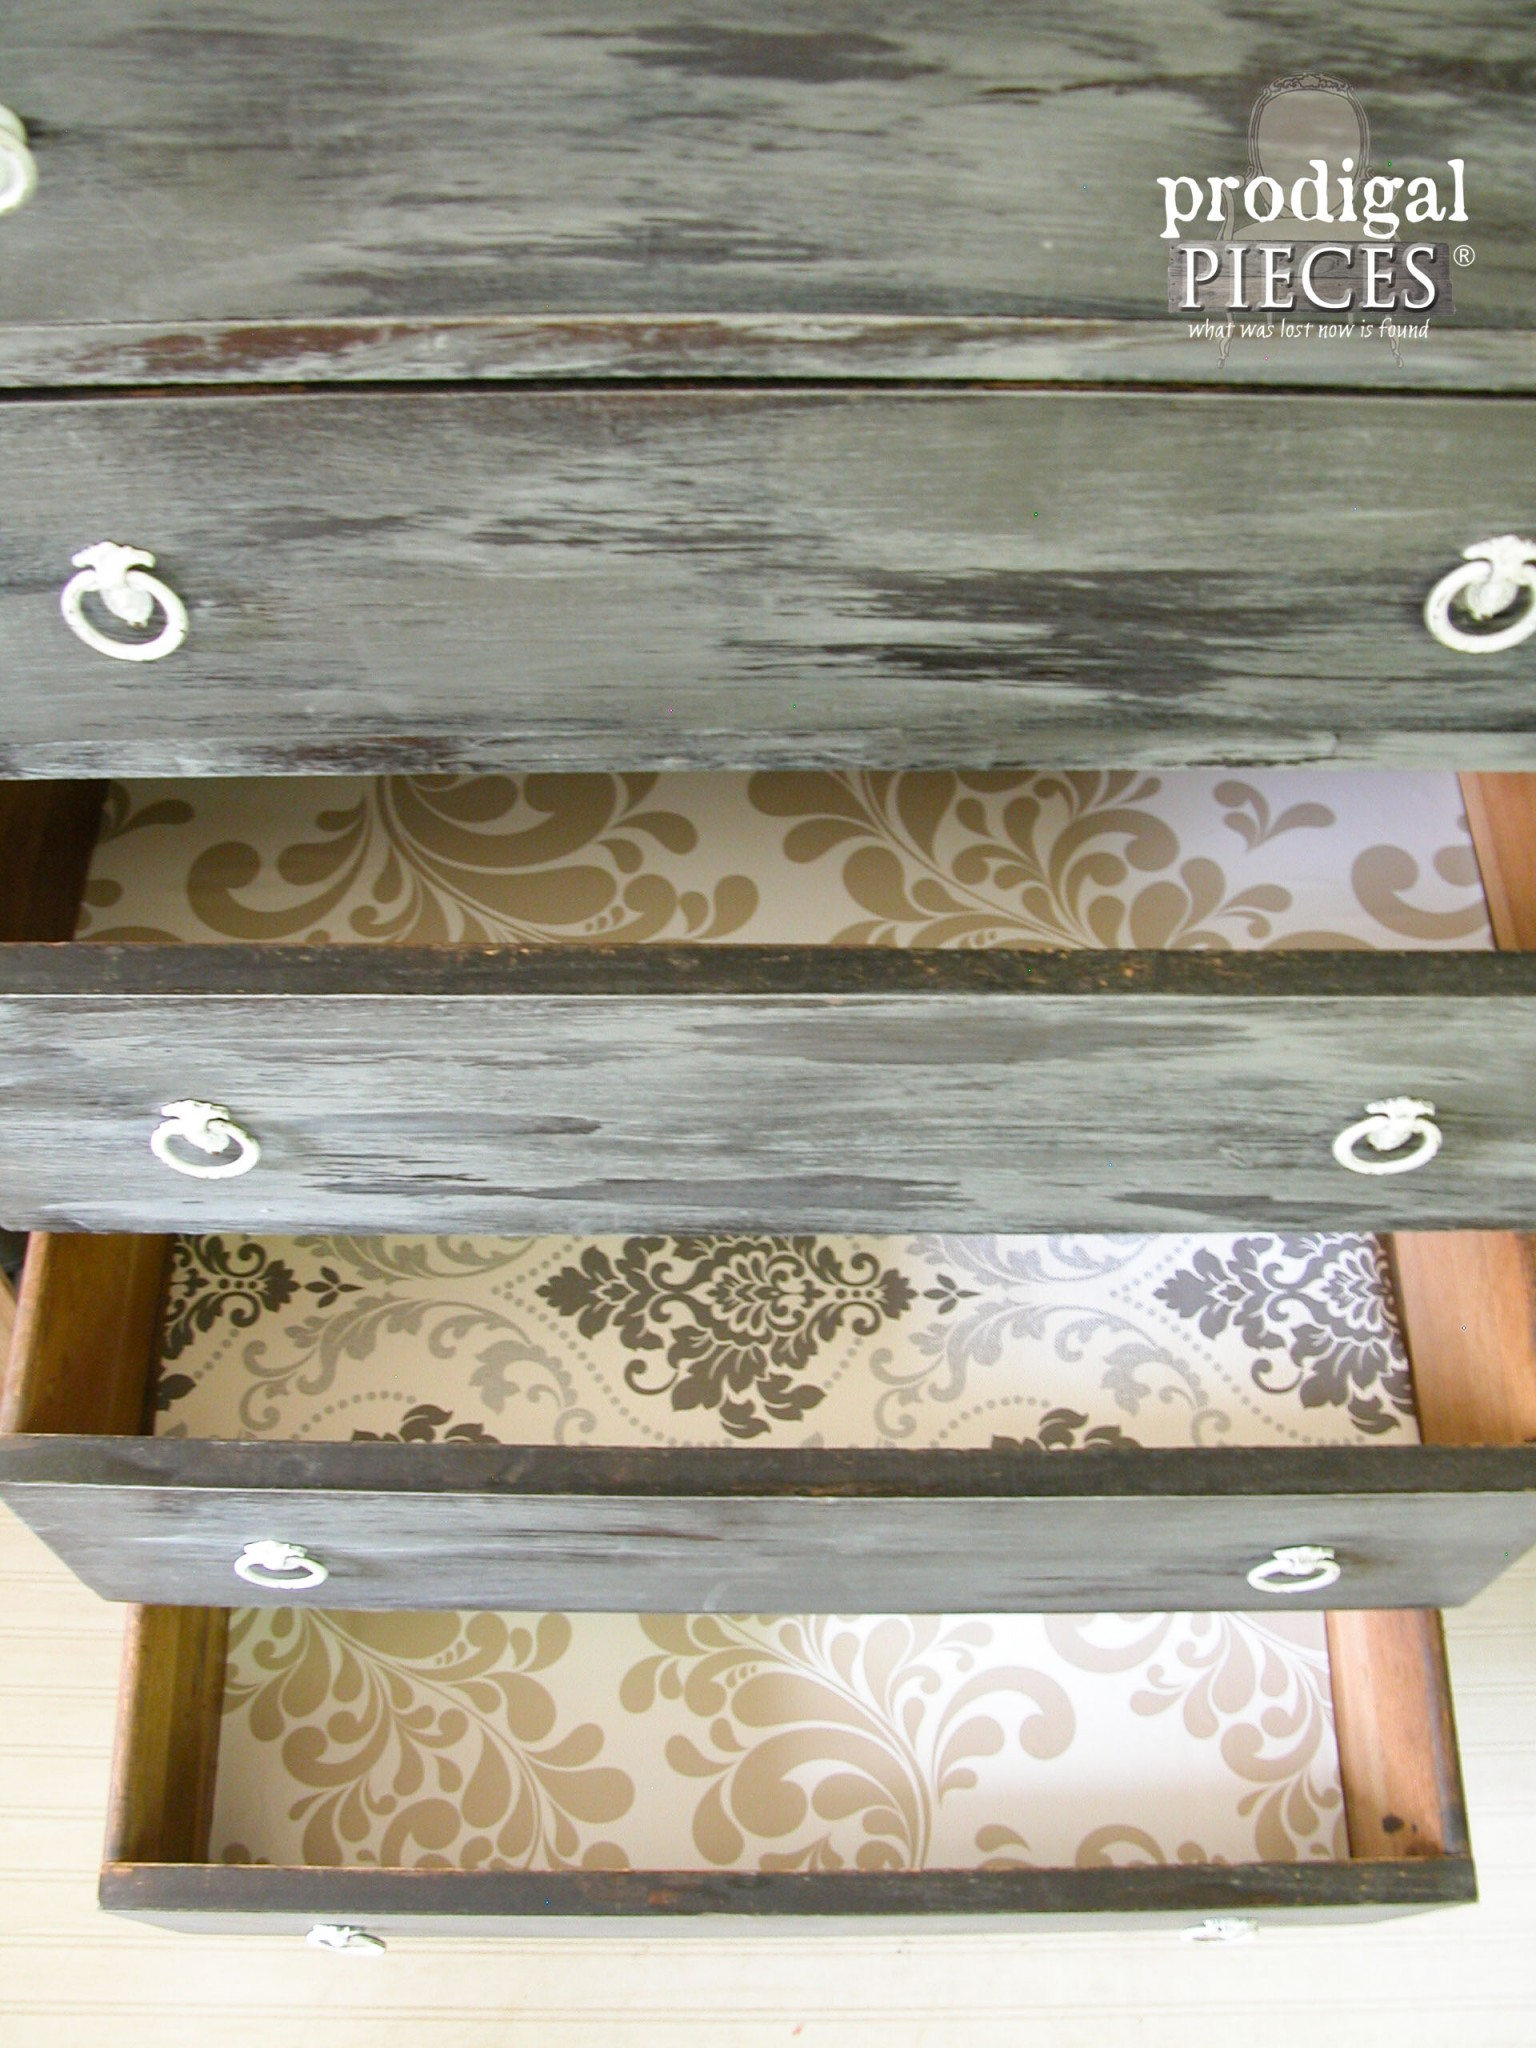 Chest of Drawers Lined with Wallpaper for Fun Contrast by Prodigal Pieces | www.prodigalpieces.com